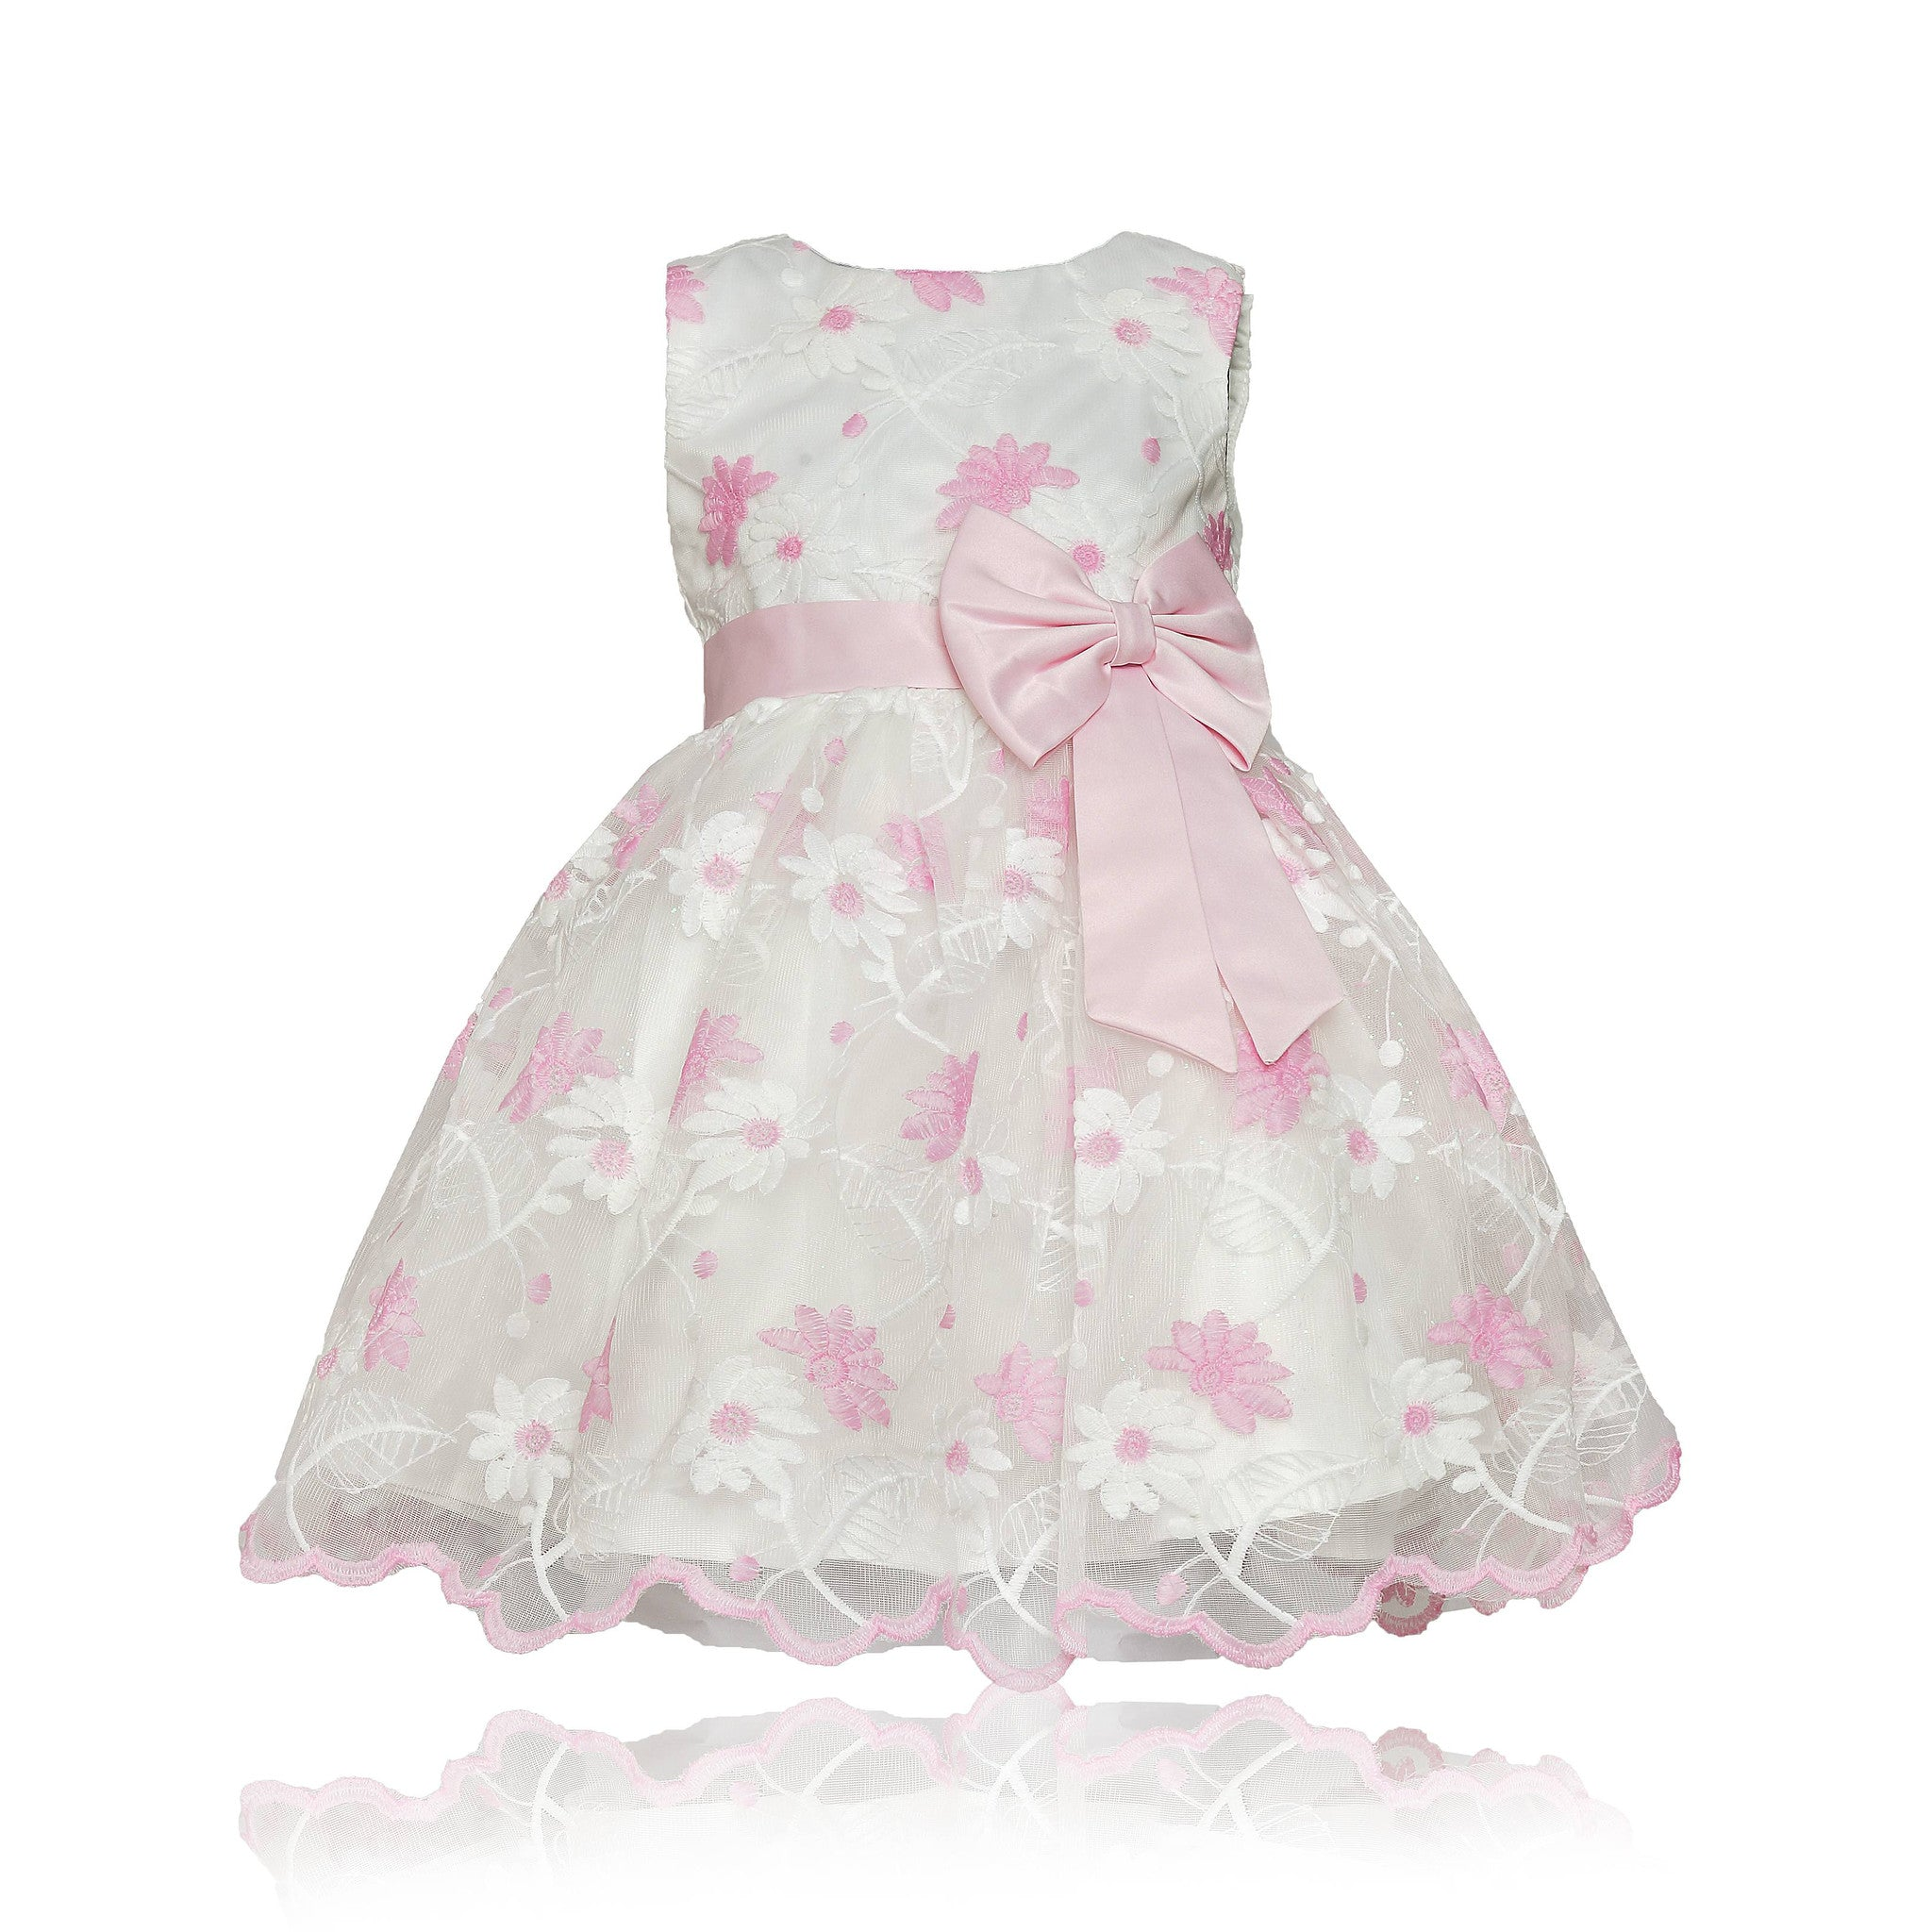 9363d113ff691 Coctail Baby Pink-On-White Flower Princess Sleeveless Frock Dress